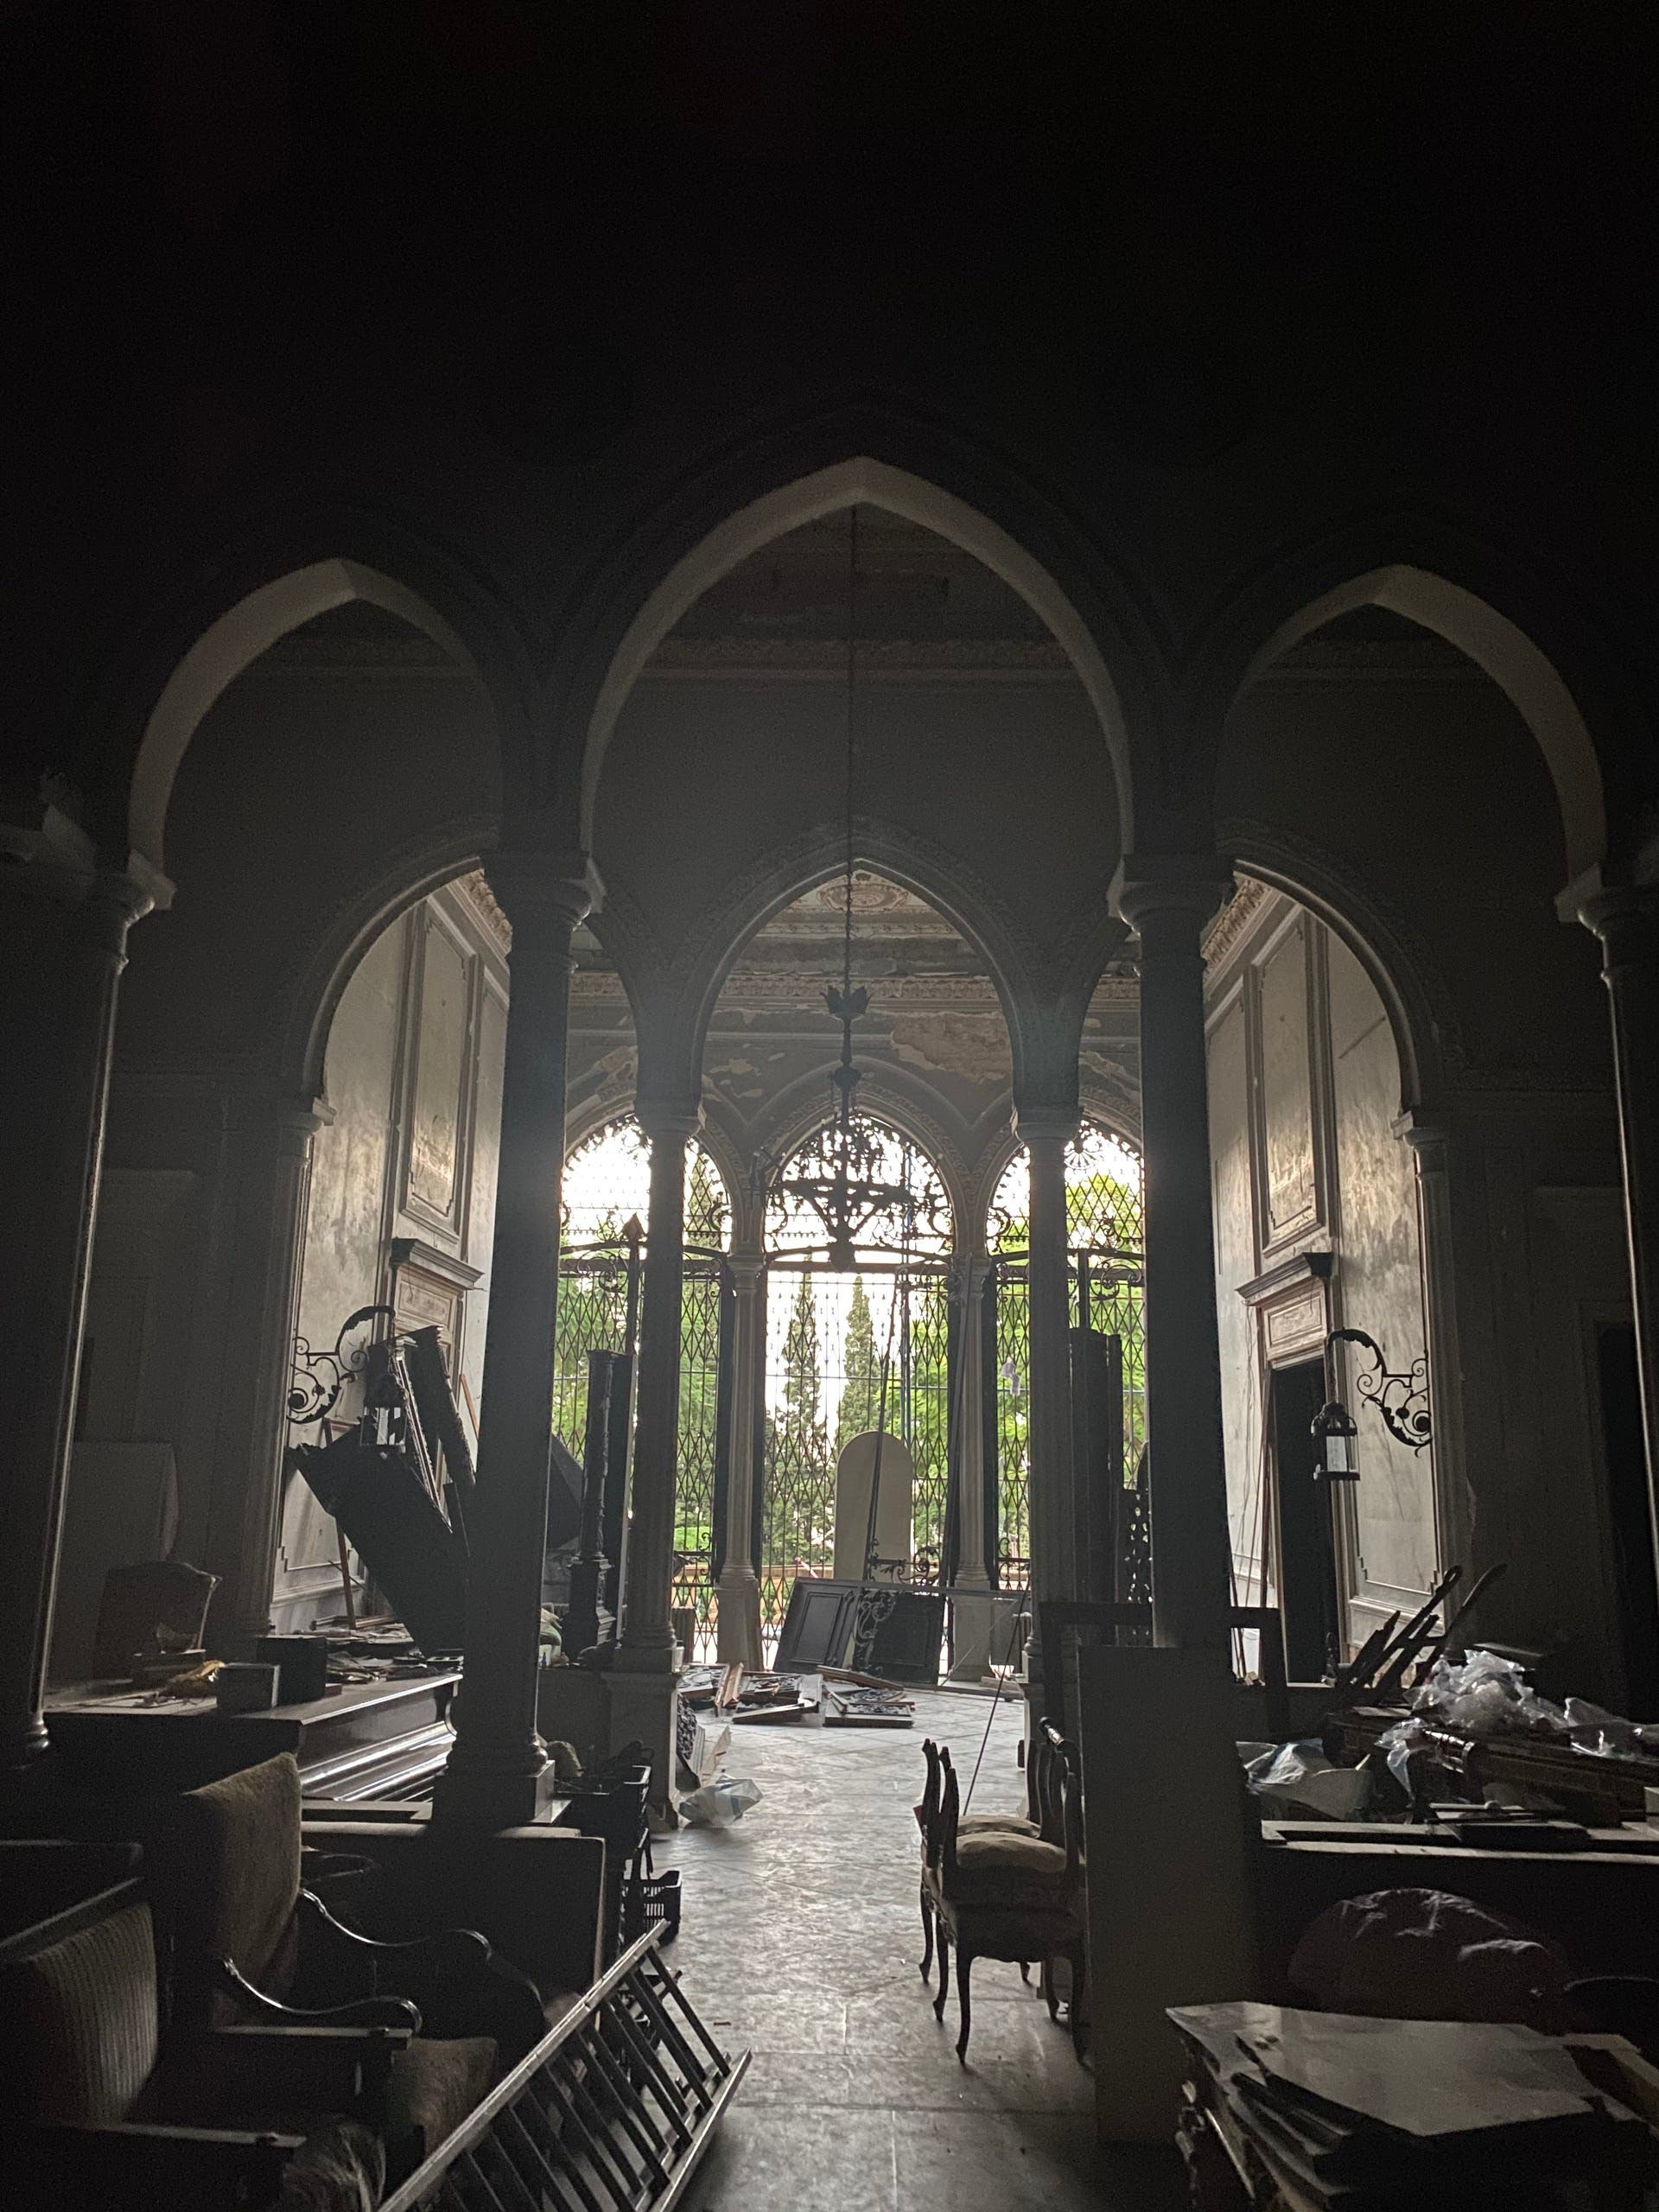 Sursock Palace's main hall after the blast, showing shattered triple arcade windows. (Photo by Bassam Lahoud)